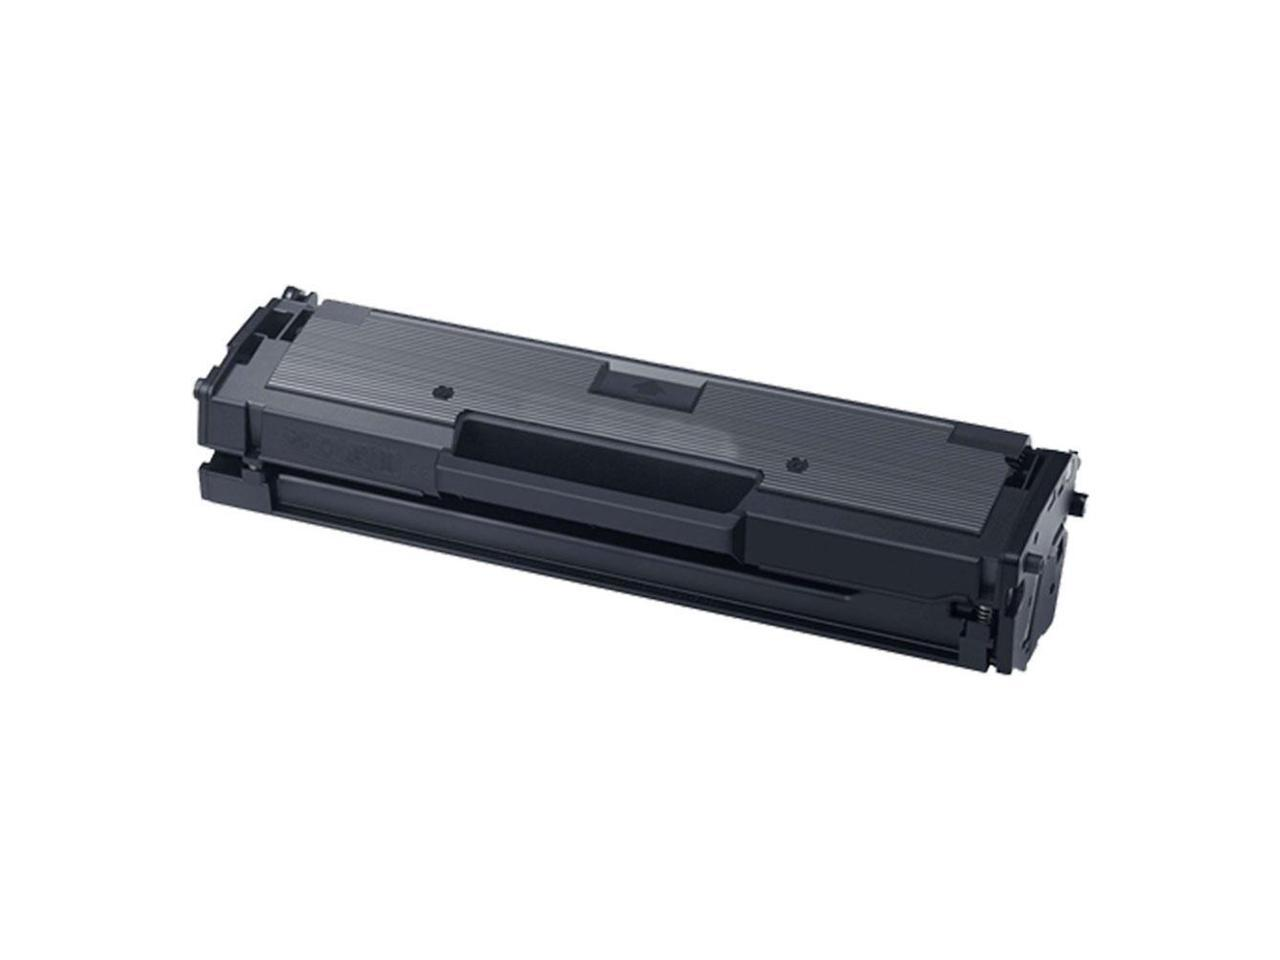 SuppliesOutlet Compatible Toner Cartridge Replacement for Samsung MLT-D111S Black,1 Pack MLTD111S for Use with Xpress M2021